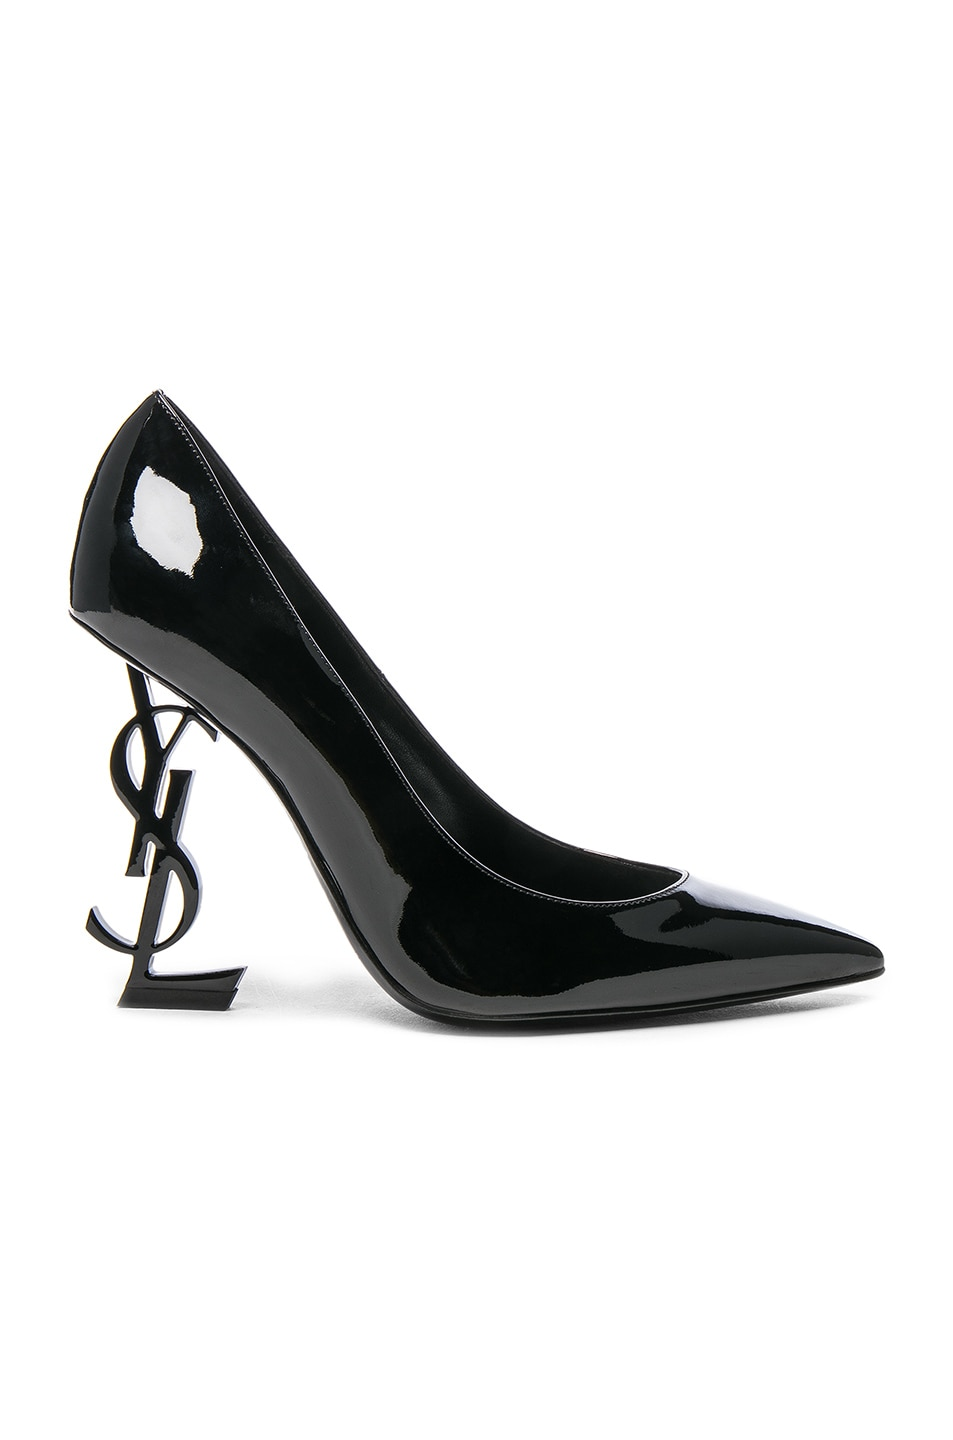 b4d18ec1433 Image 1 of Saint Laurent Patent Leather Opium Monogramme Heels in Black &  Black